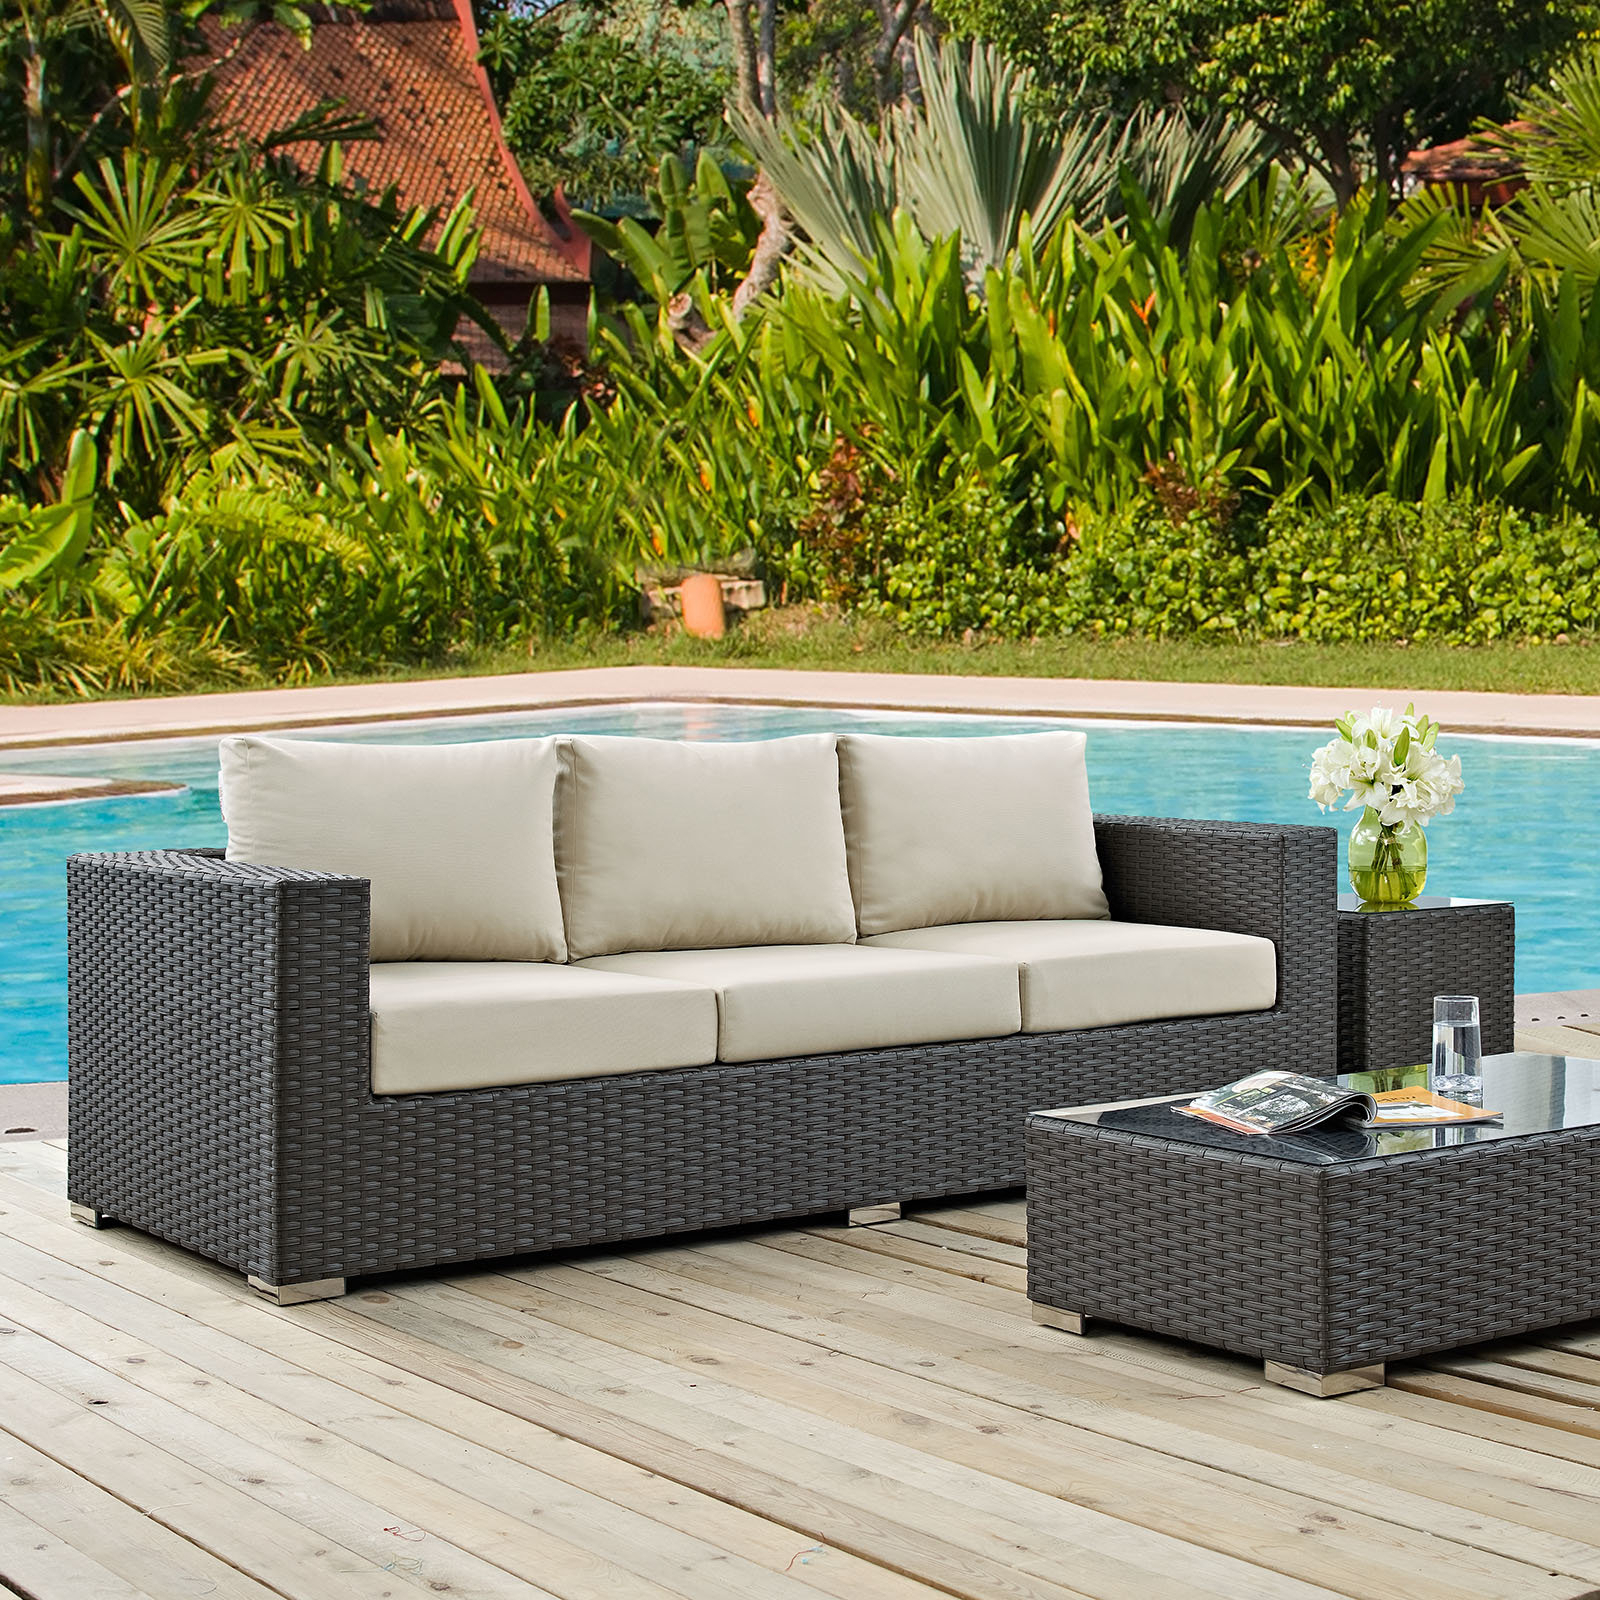 2020 Stapleton Wicker Resin Patio Sofas With Cushions Intended For Tripp Sofa With Cushions (Gallery 11 of 20)